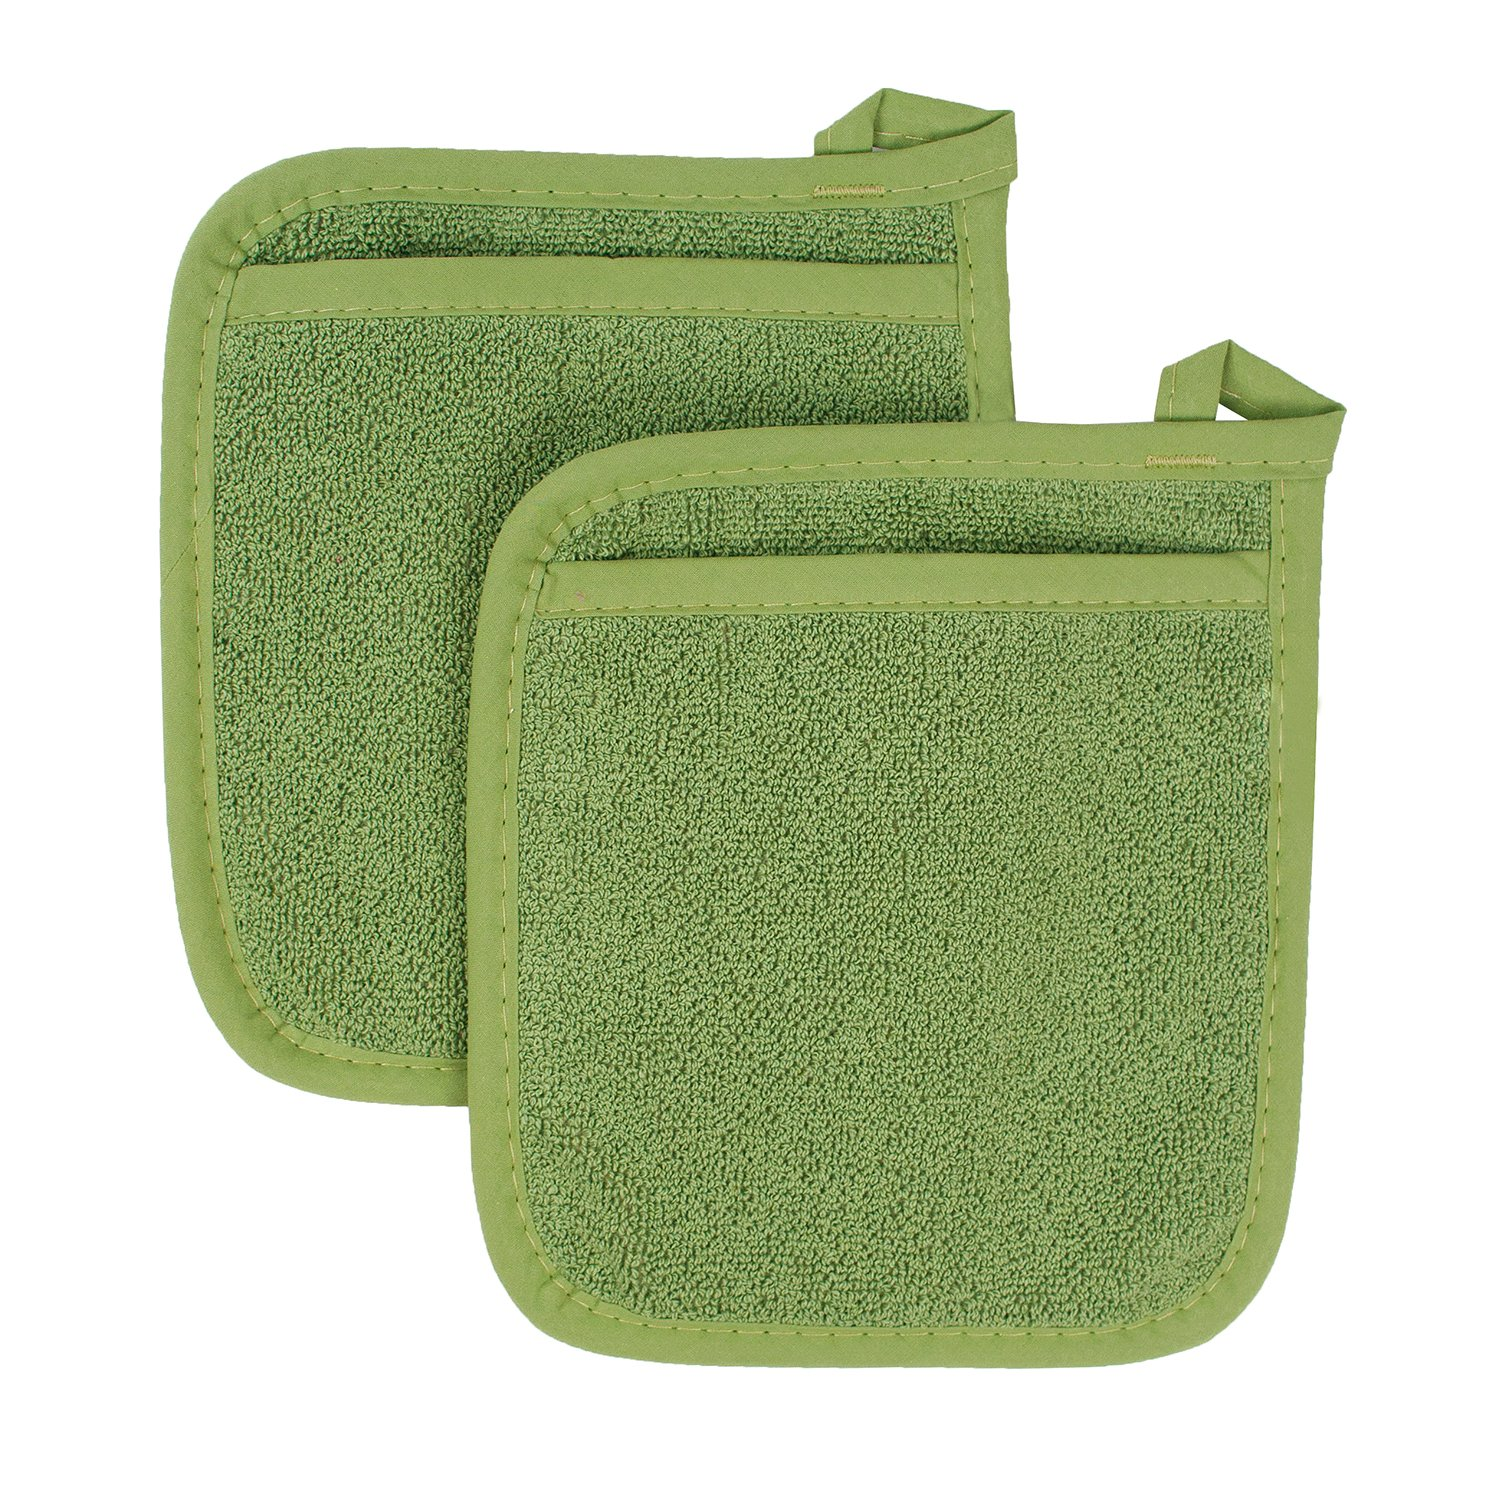 Ritz Royale Collection 100% Cotton Terry Cloth Pocket Mitt Set, Dual-Function Hot Pad/Pot Holder, 2-Piece, Cactus Green